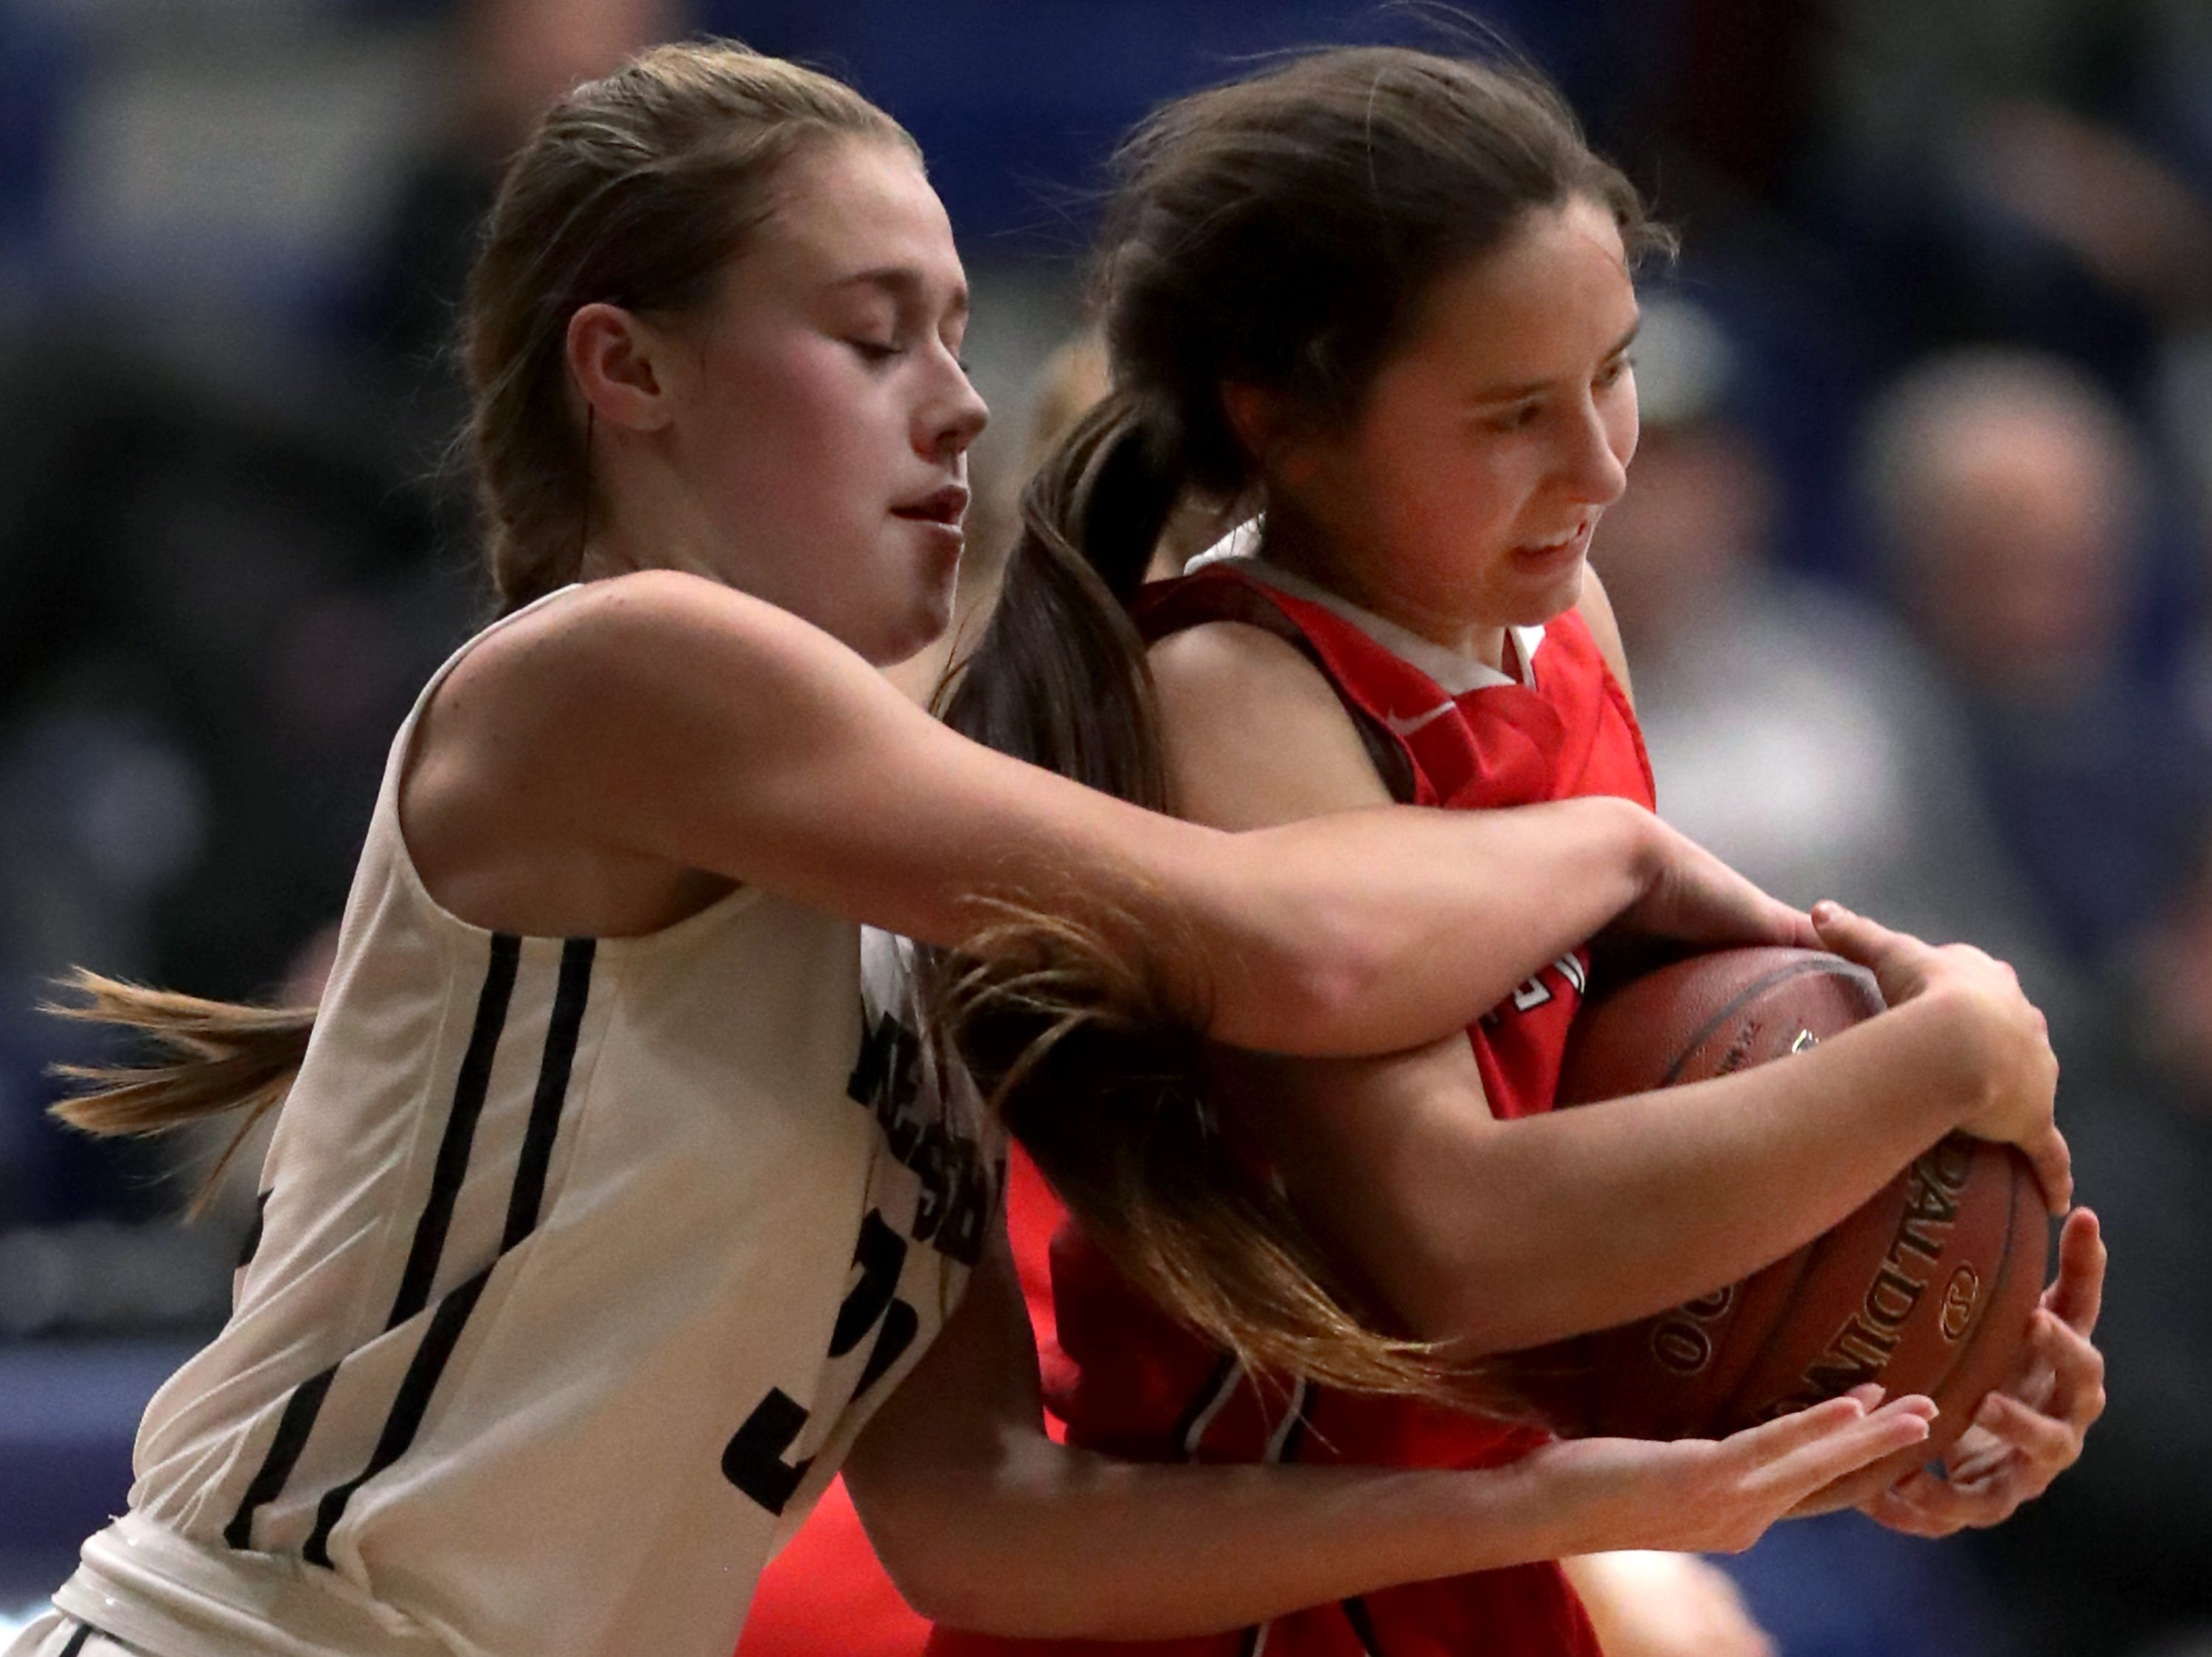 New London High School's #24 Samantha Pfefferle against Menasha High School's #32 Leah Johnson during their girls basketball game on Friday, December 14, 2018, in Menasha, Wis.